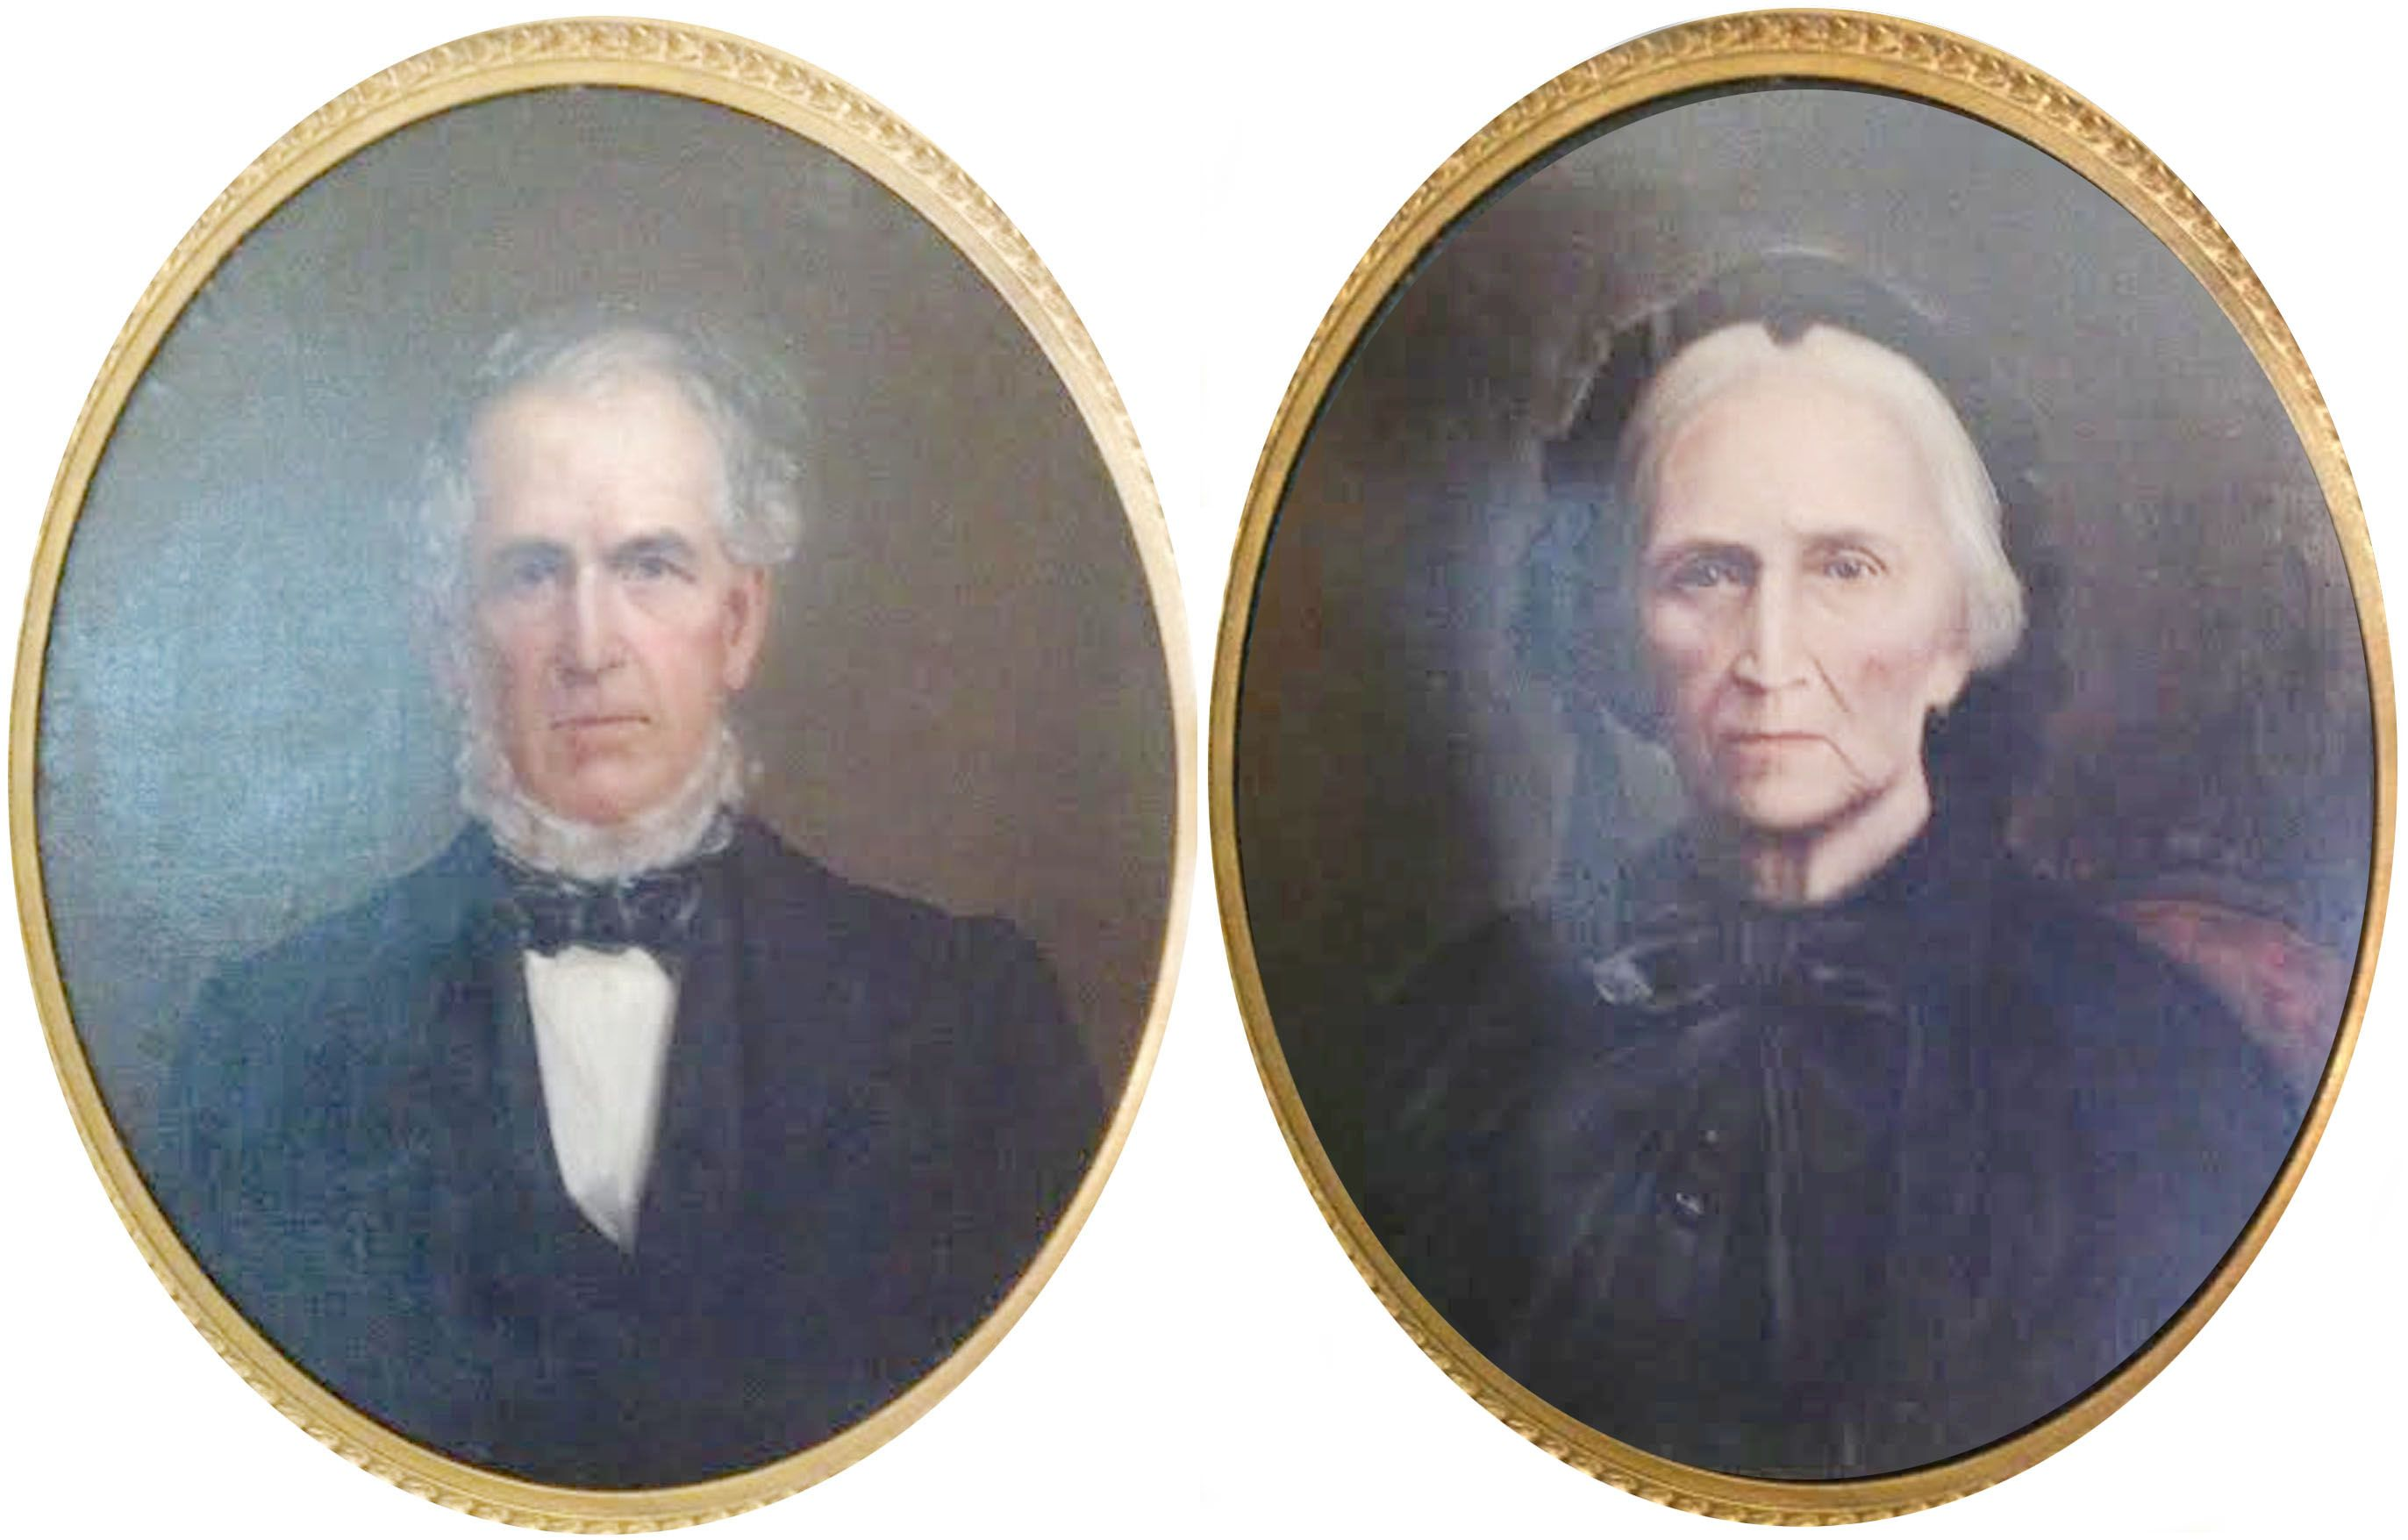 Oil portraits from the 1840's in Springfield, Sangamon Co IL. My 4x Great Grandparents!!! William Caldwell b. 1779 Nanesmond Co VA and dec. 1844 Sangamon Co IL married Feb 7, 1804 Nancy RoBards b. 1782 Goochland Co VA and dec. 1858 Sangamon Co IL